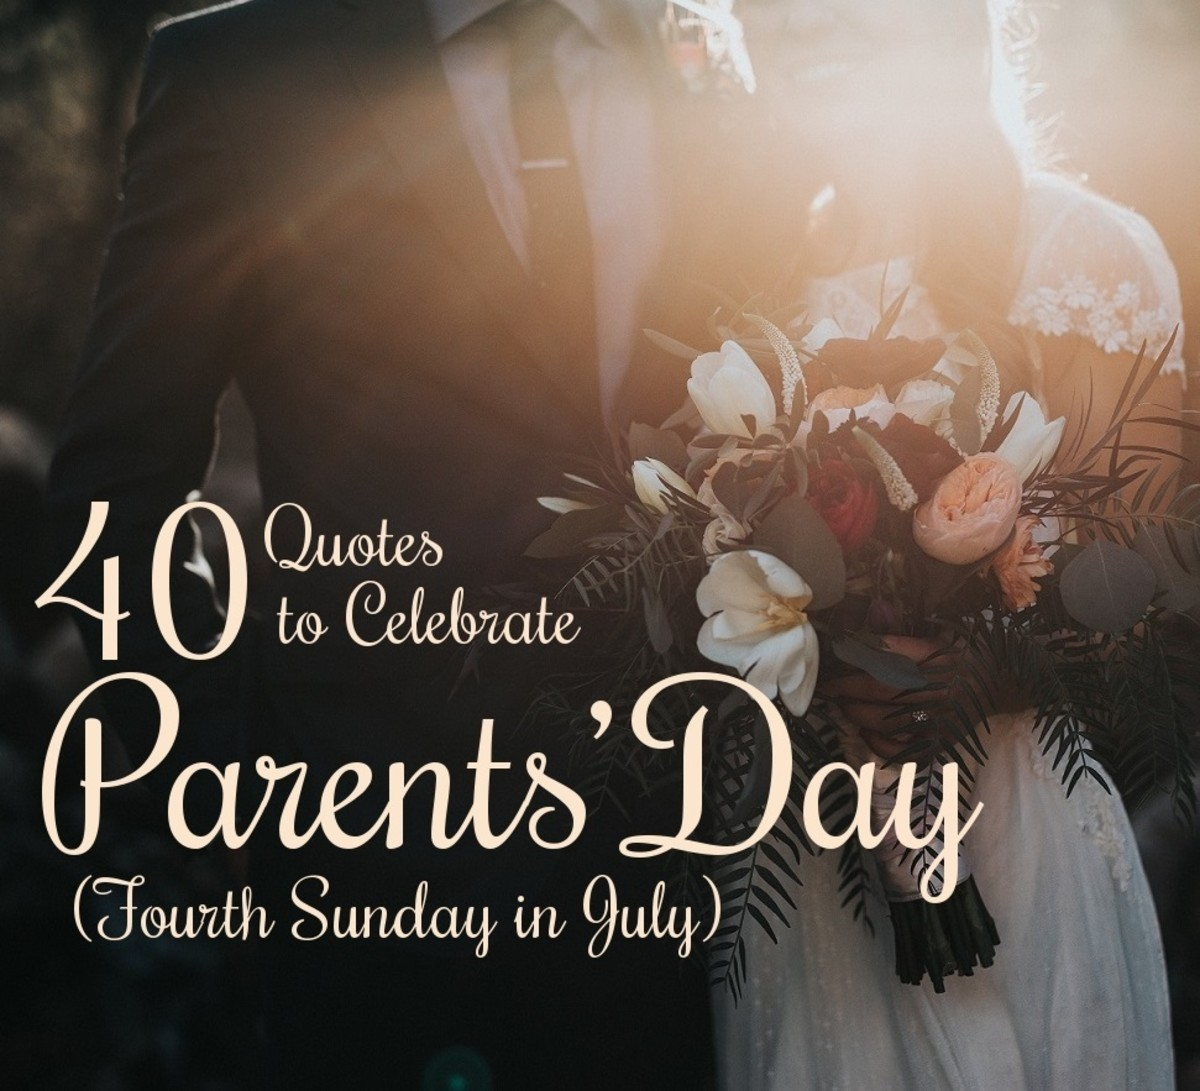 40 Quotes to Celebrate Parents' Day (Fourth Sunday in July)